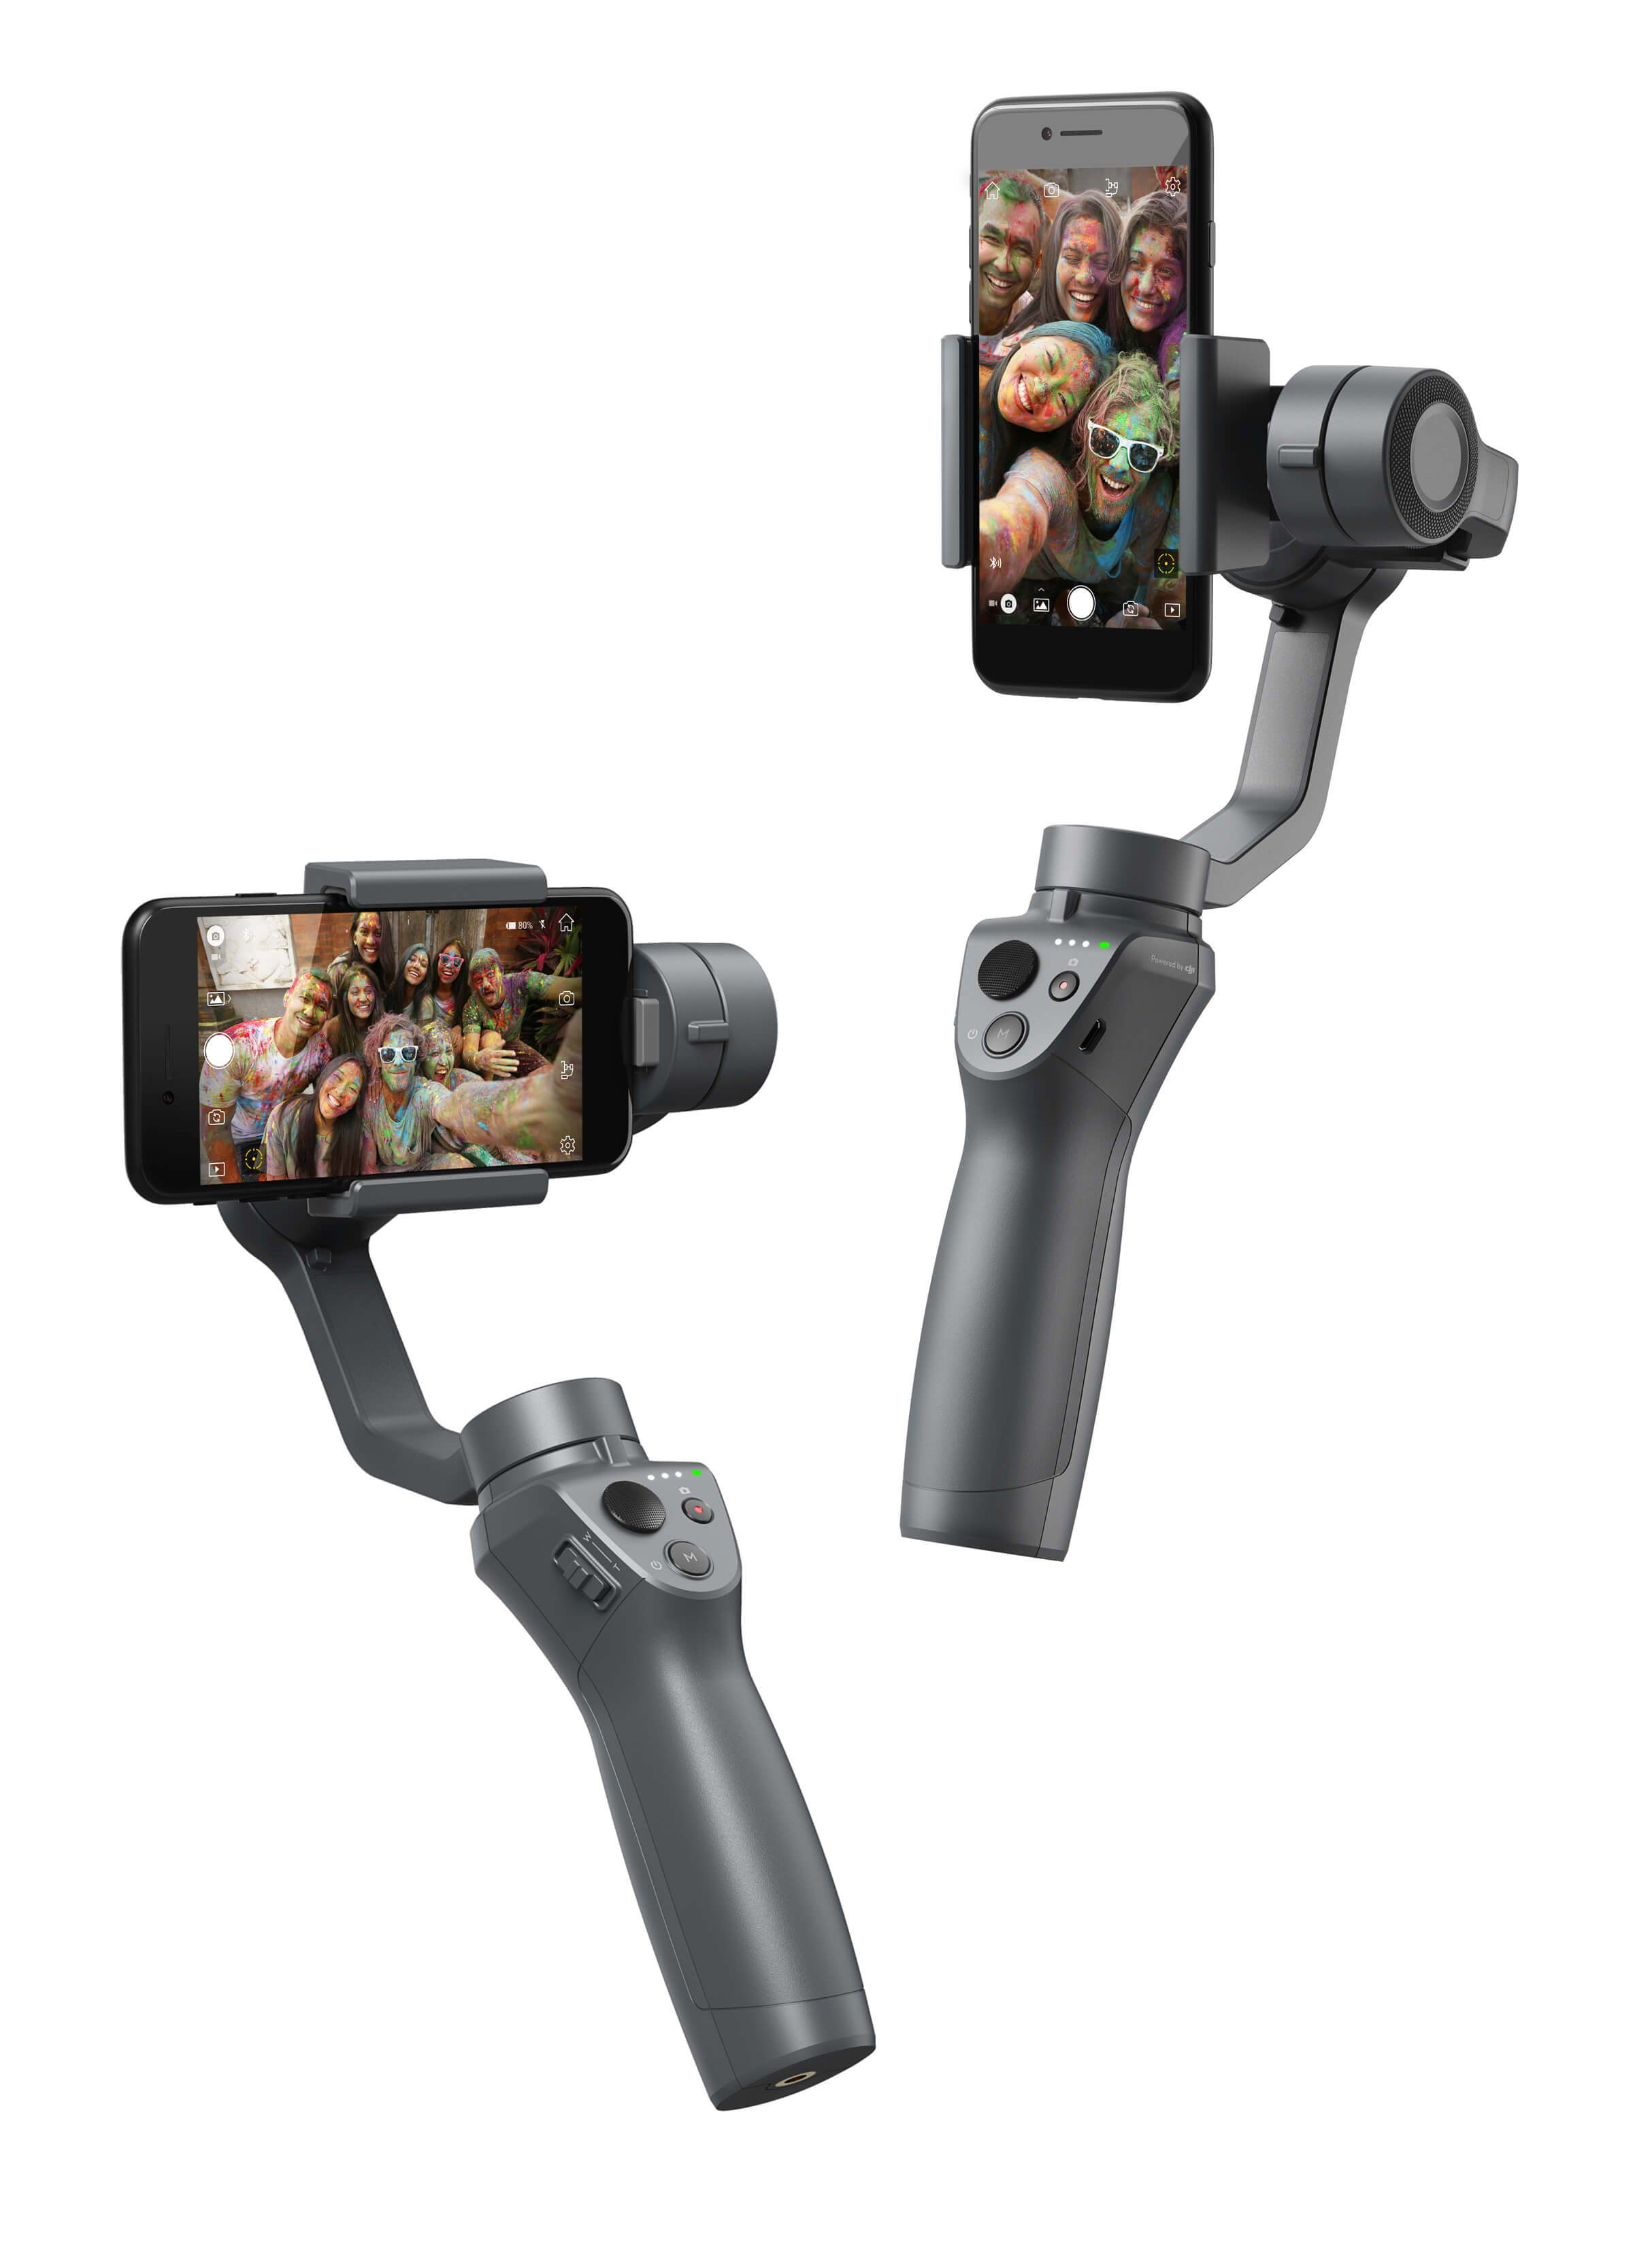 DJI Osmo Mobile 2 - Design